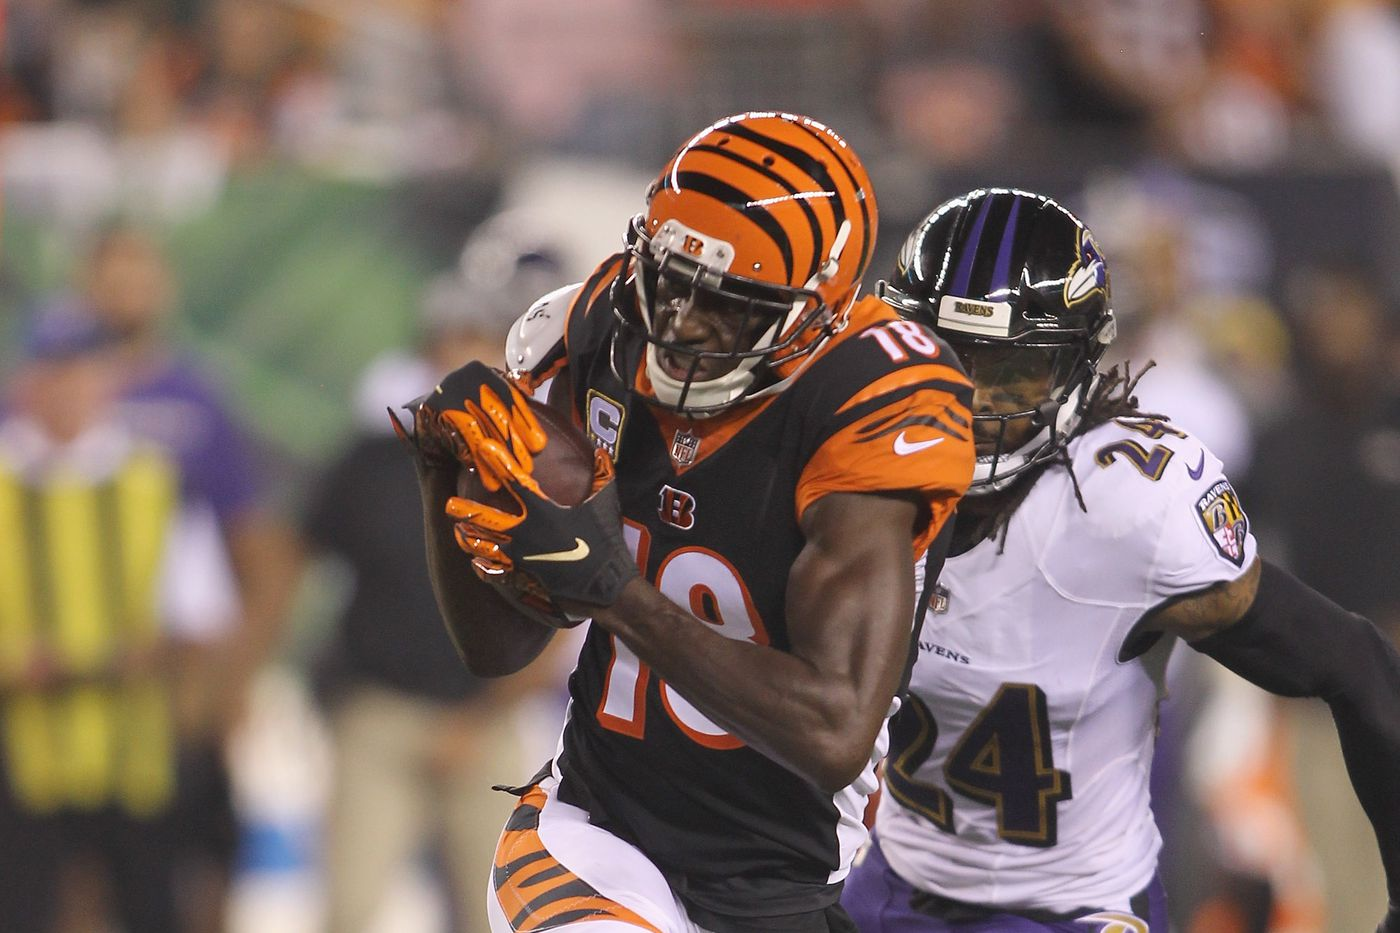 Ravens bengals betting preview premier betting tanzania normal late